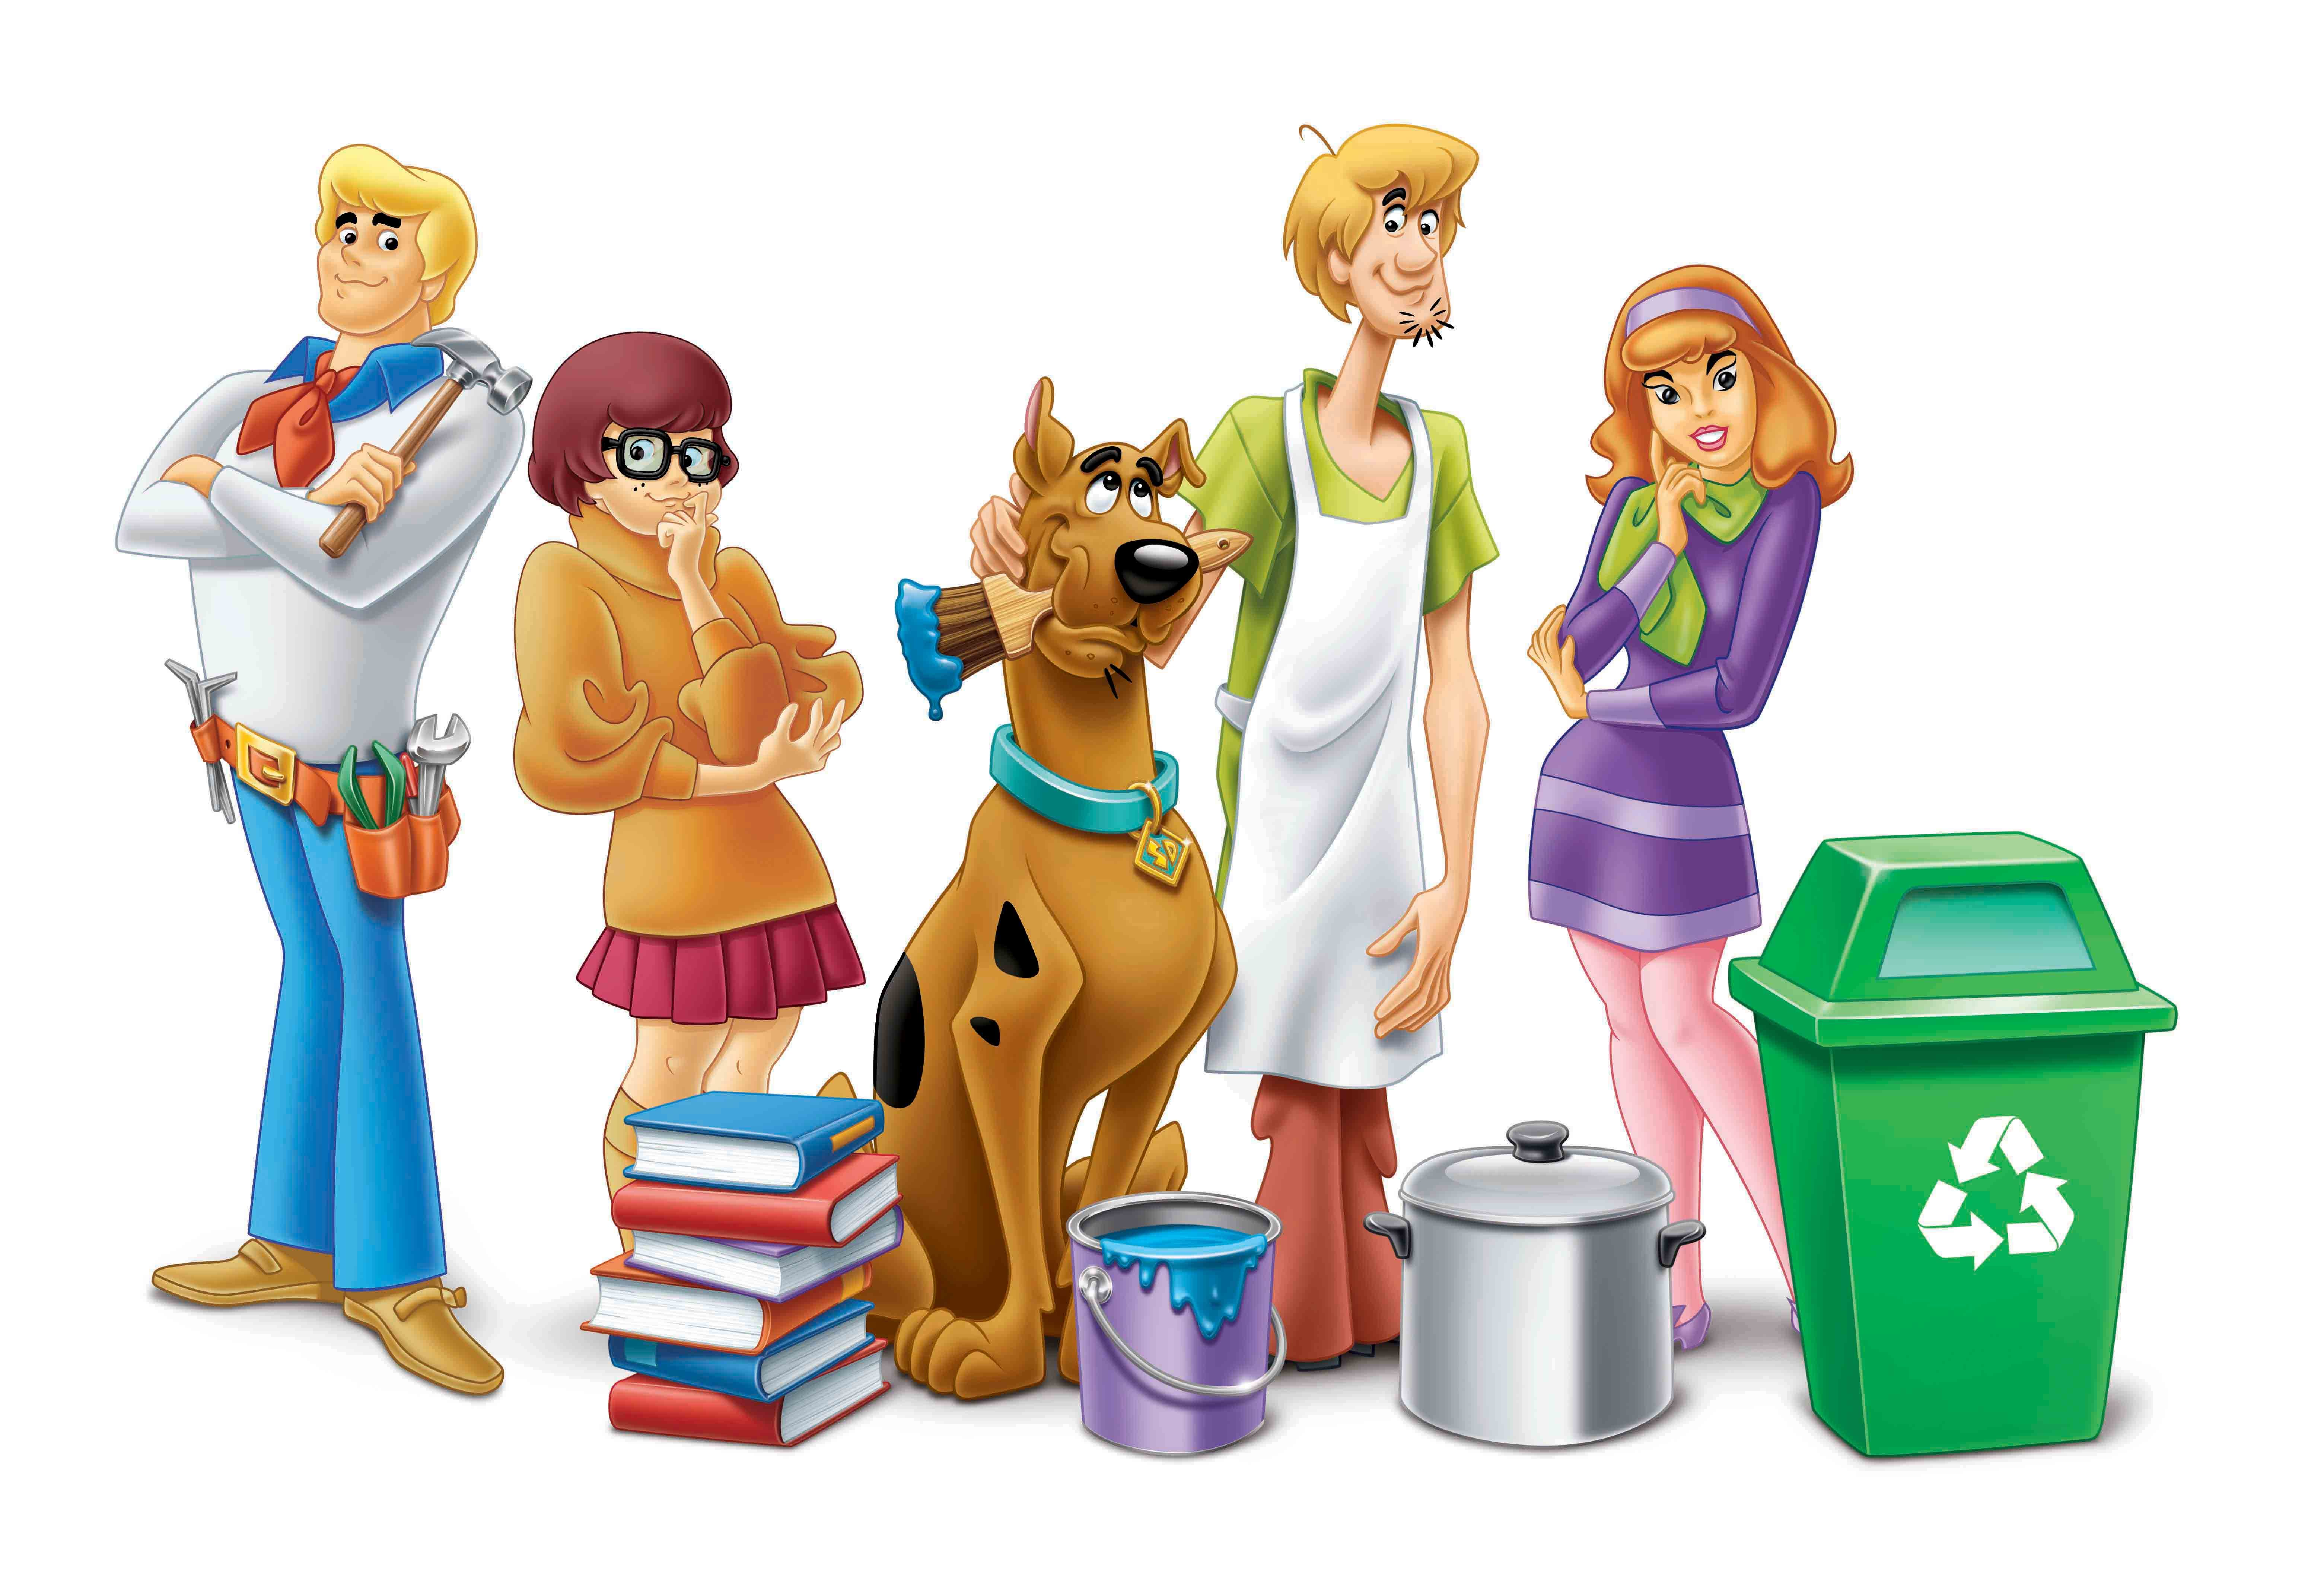 Scooby-Doo and the Mystery Inc. Gang Inspire More Meddling Kids and Their Parents to u201cDOO GOODu201d in Their Communities with a New Social Responsibility ...  sc 1 st  Business Wire & Scooby-Doo and the Mystery Inc. Gang Inspire More Meddling Kids and ...